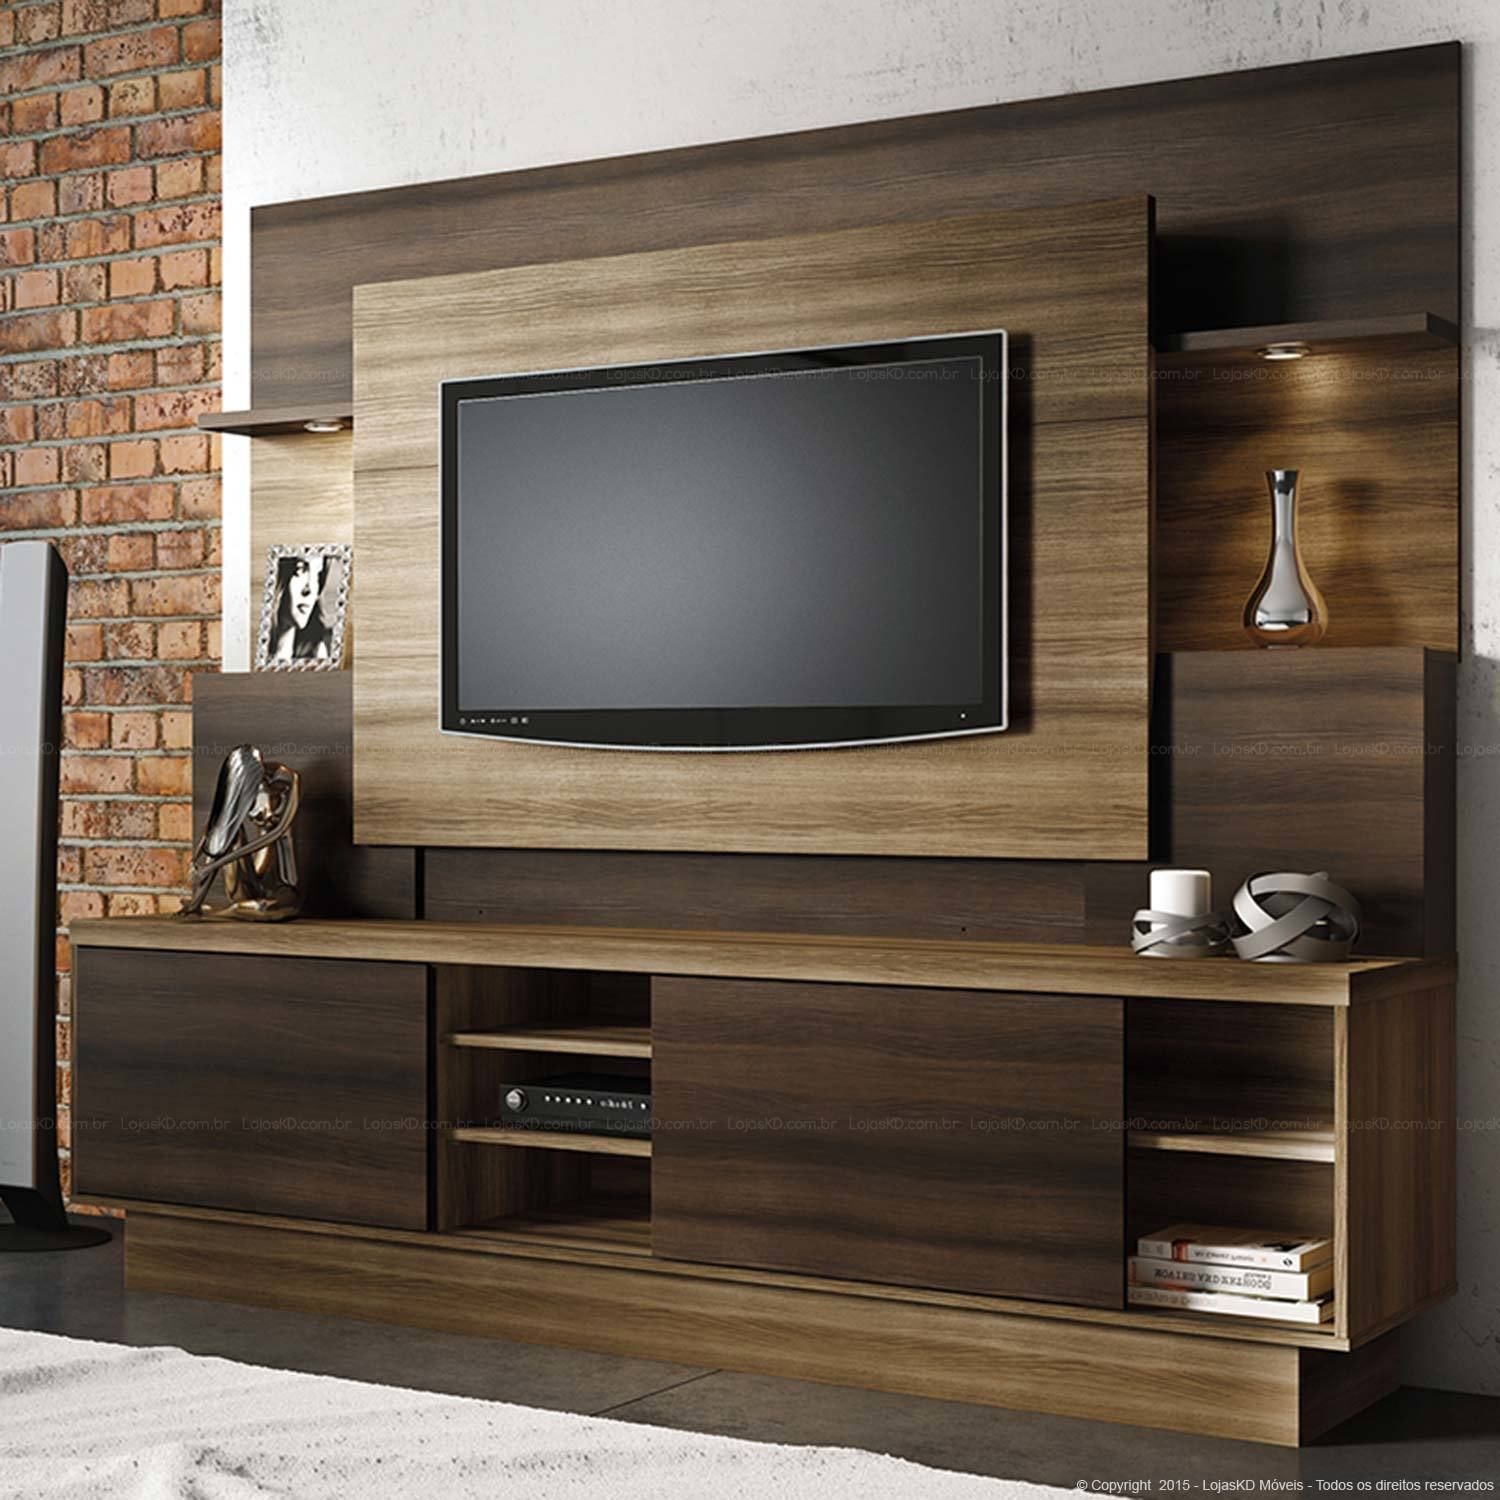 14 Modern Tv Wall Mount Ideas For Your Best Room Archlux Net Wall Tv Unit Design Tv Wall Decor Tv Stand Designs